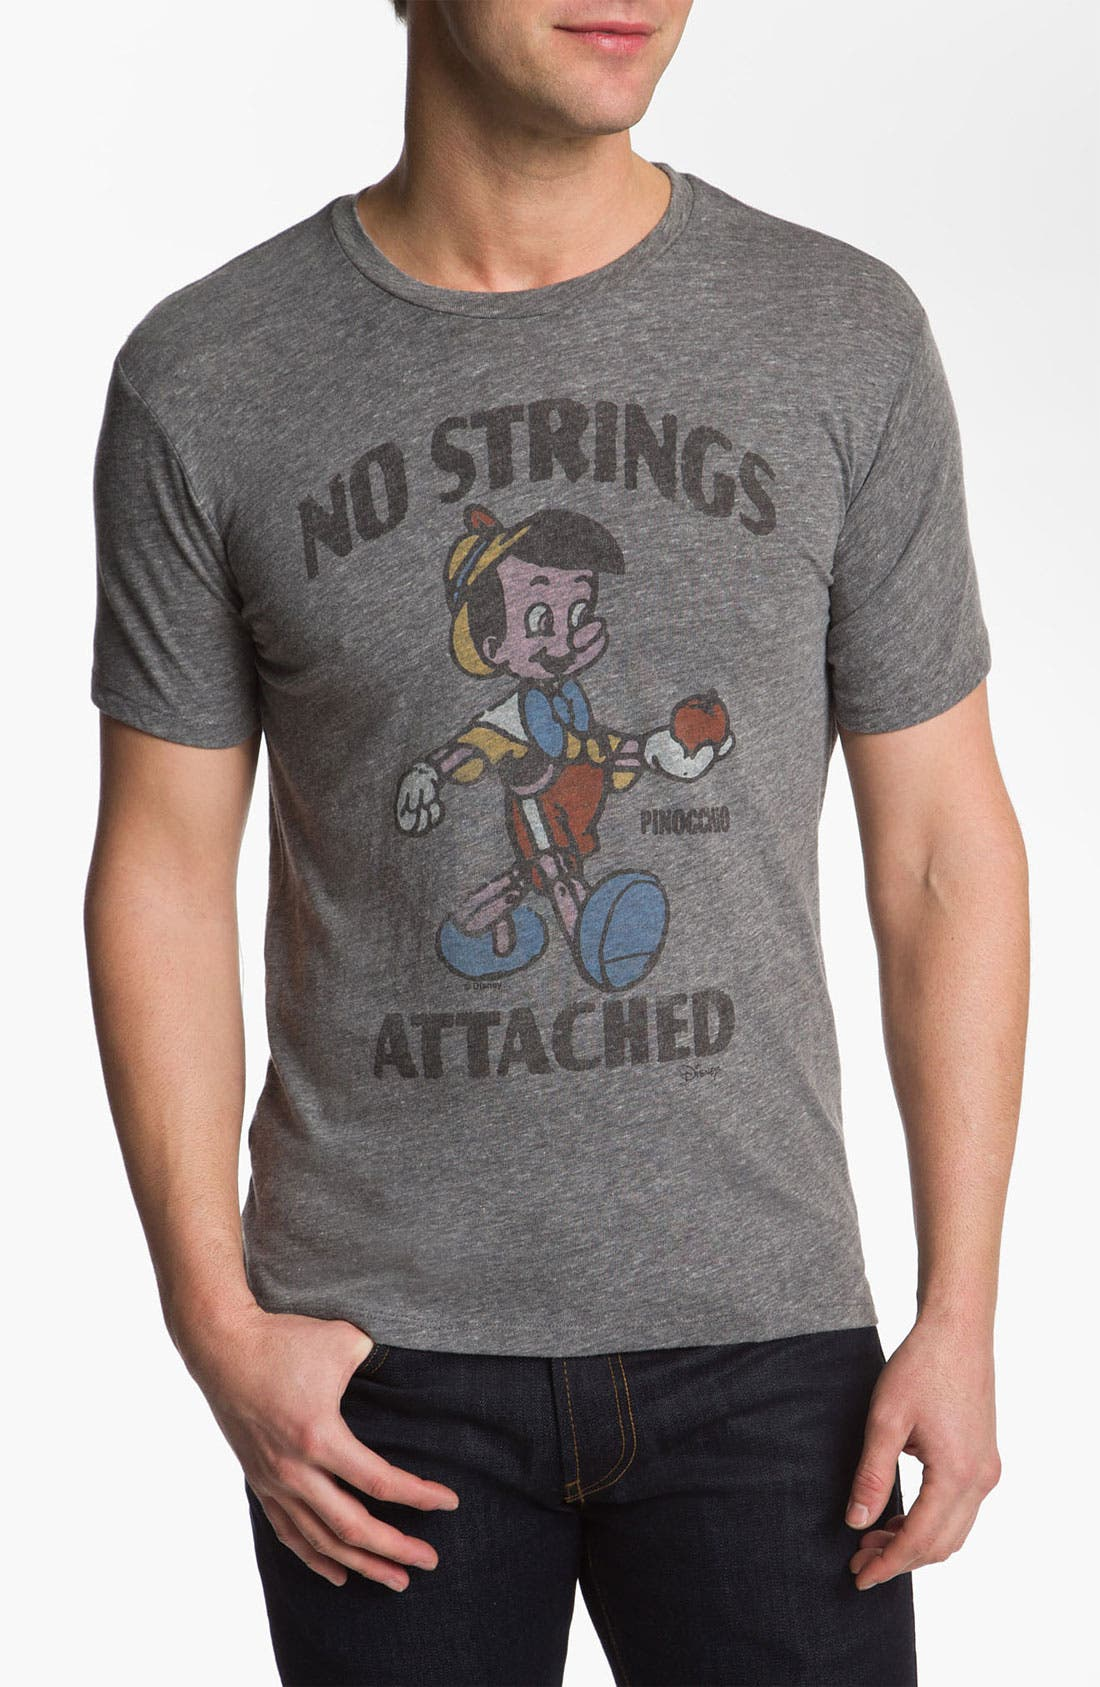 Alternate Image 1 Selected - Junk Food 'No Strings Attached' Graphic T-Shirt